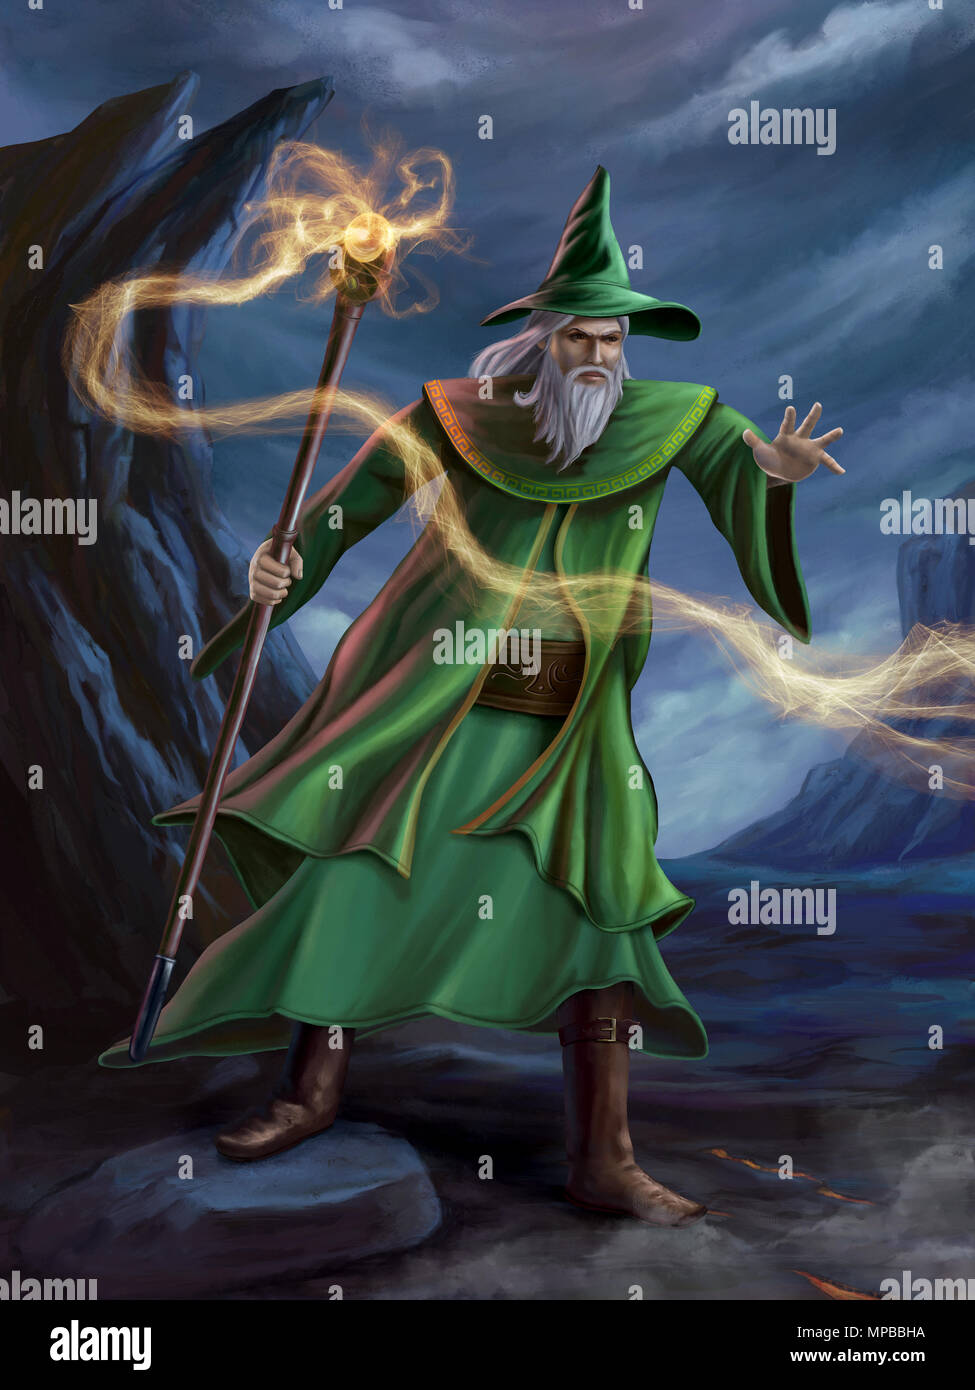 Spell Casting High Resolution Stock Photography and Images - Alamy